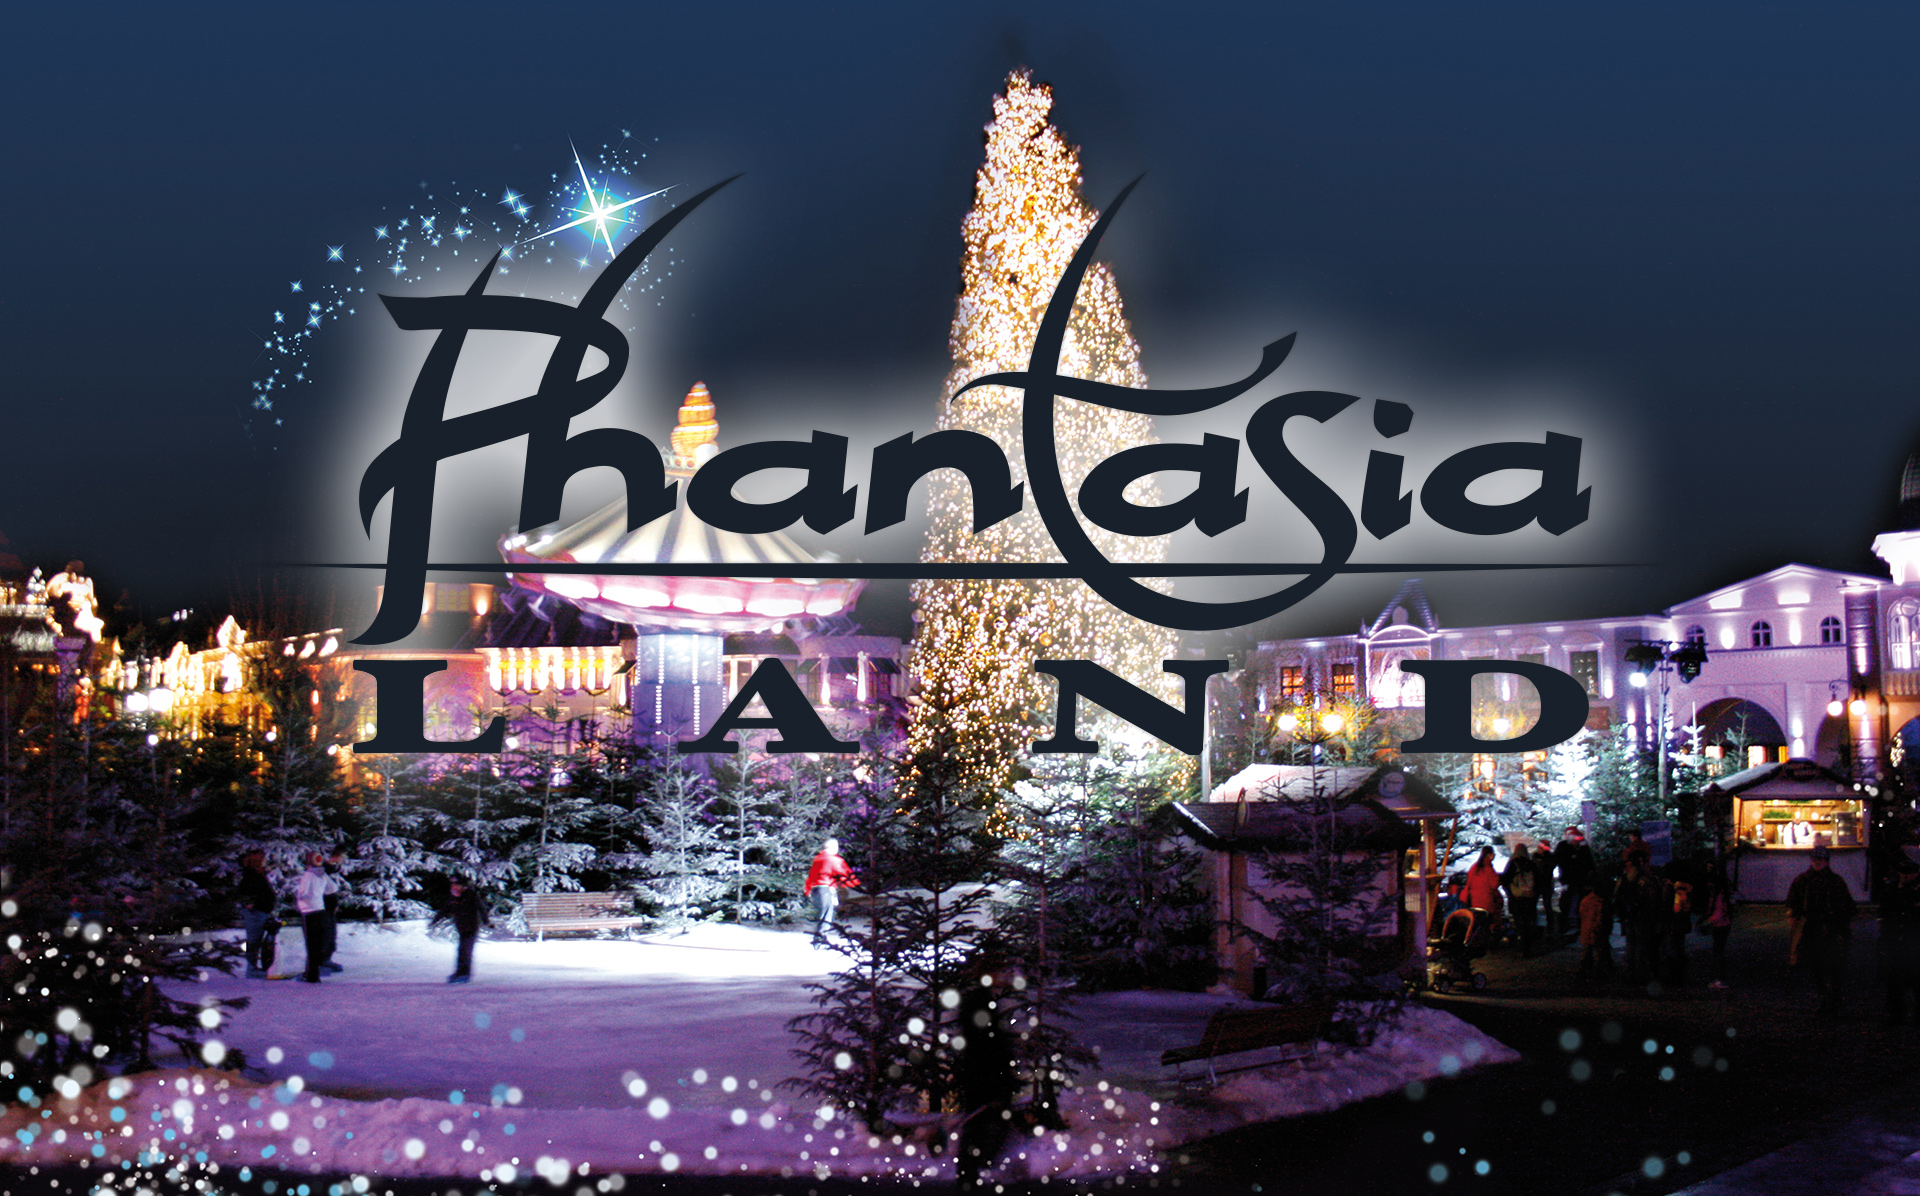 phantasialand schenkt juli besuchern eintritt zu wintertraum 2014. Black Bedroom Furniture Sets. Home Design Ideas